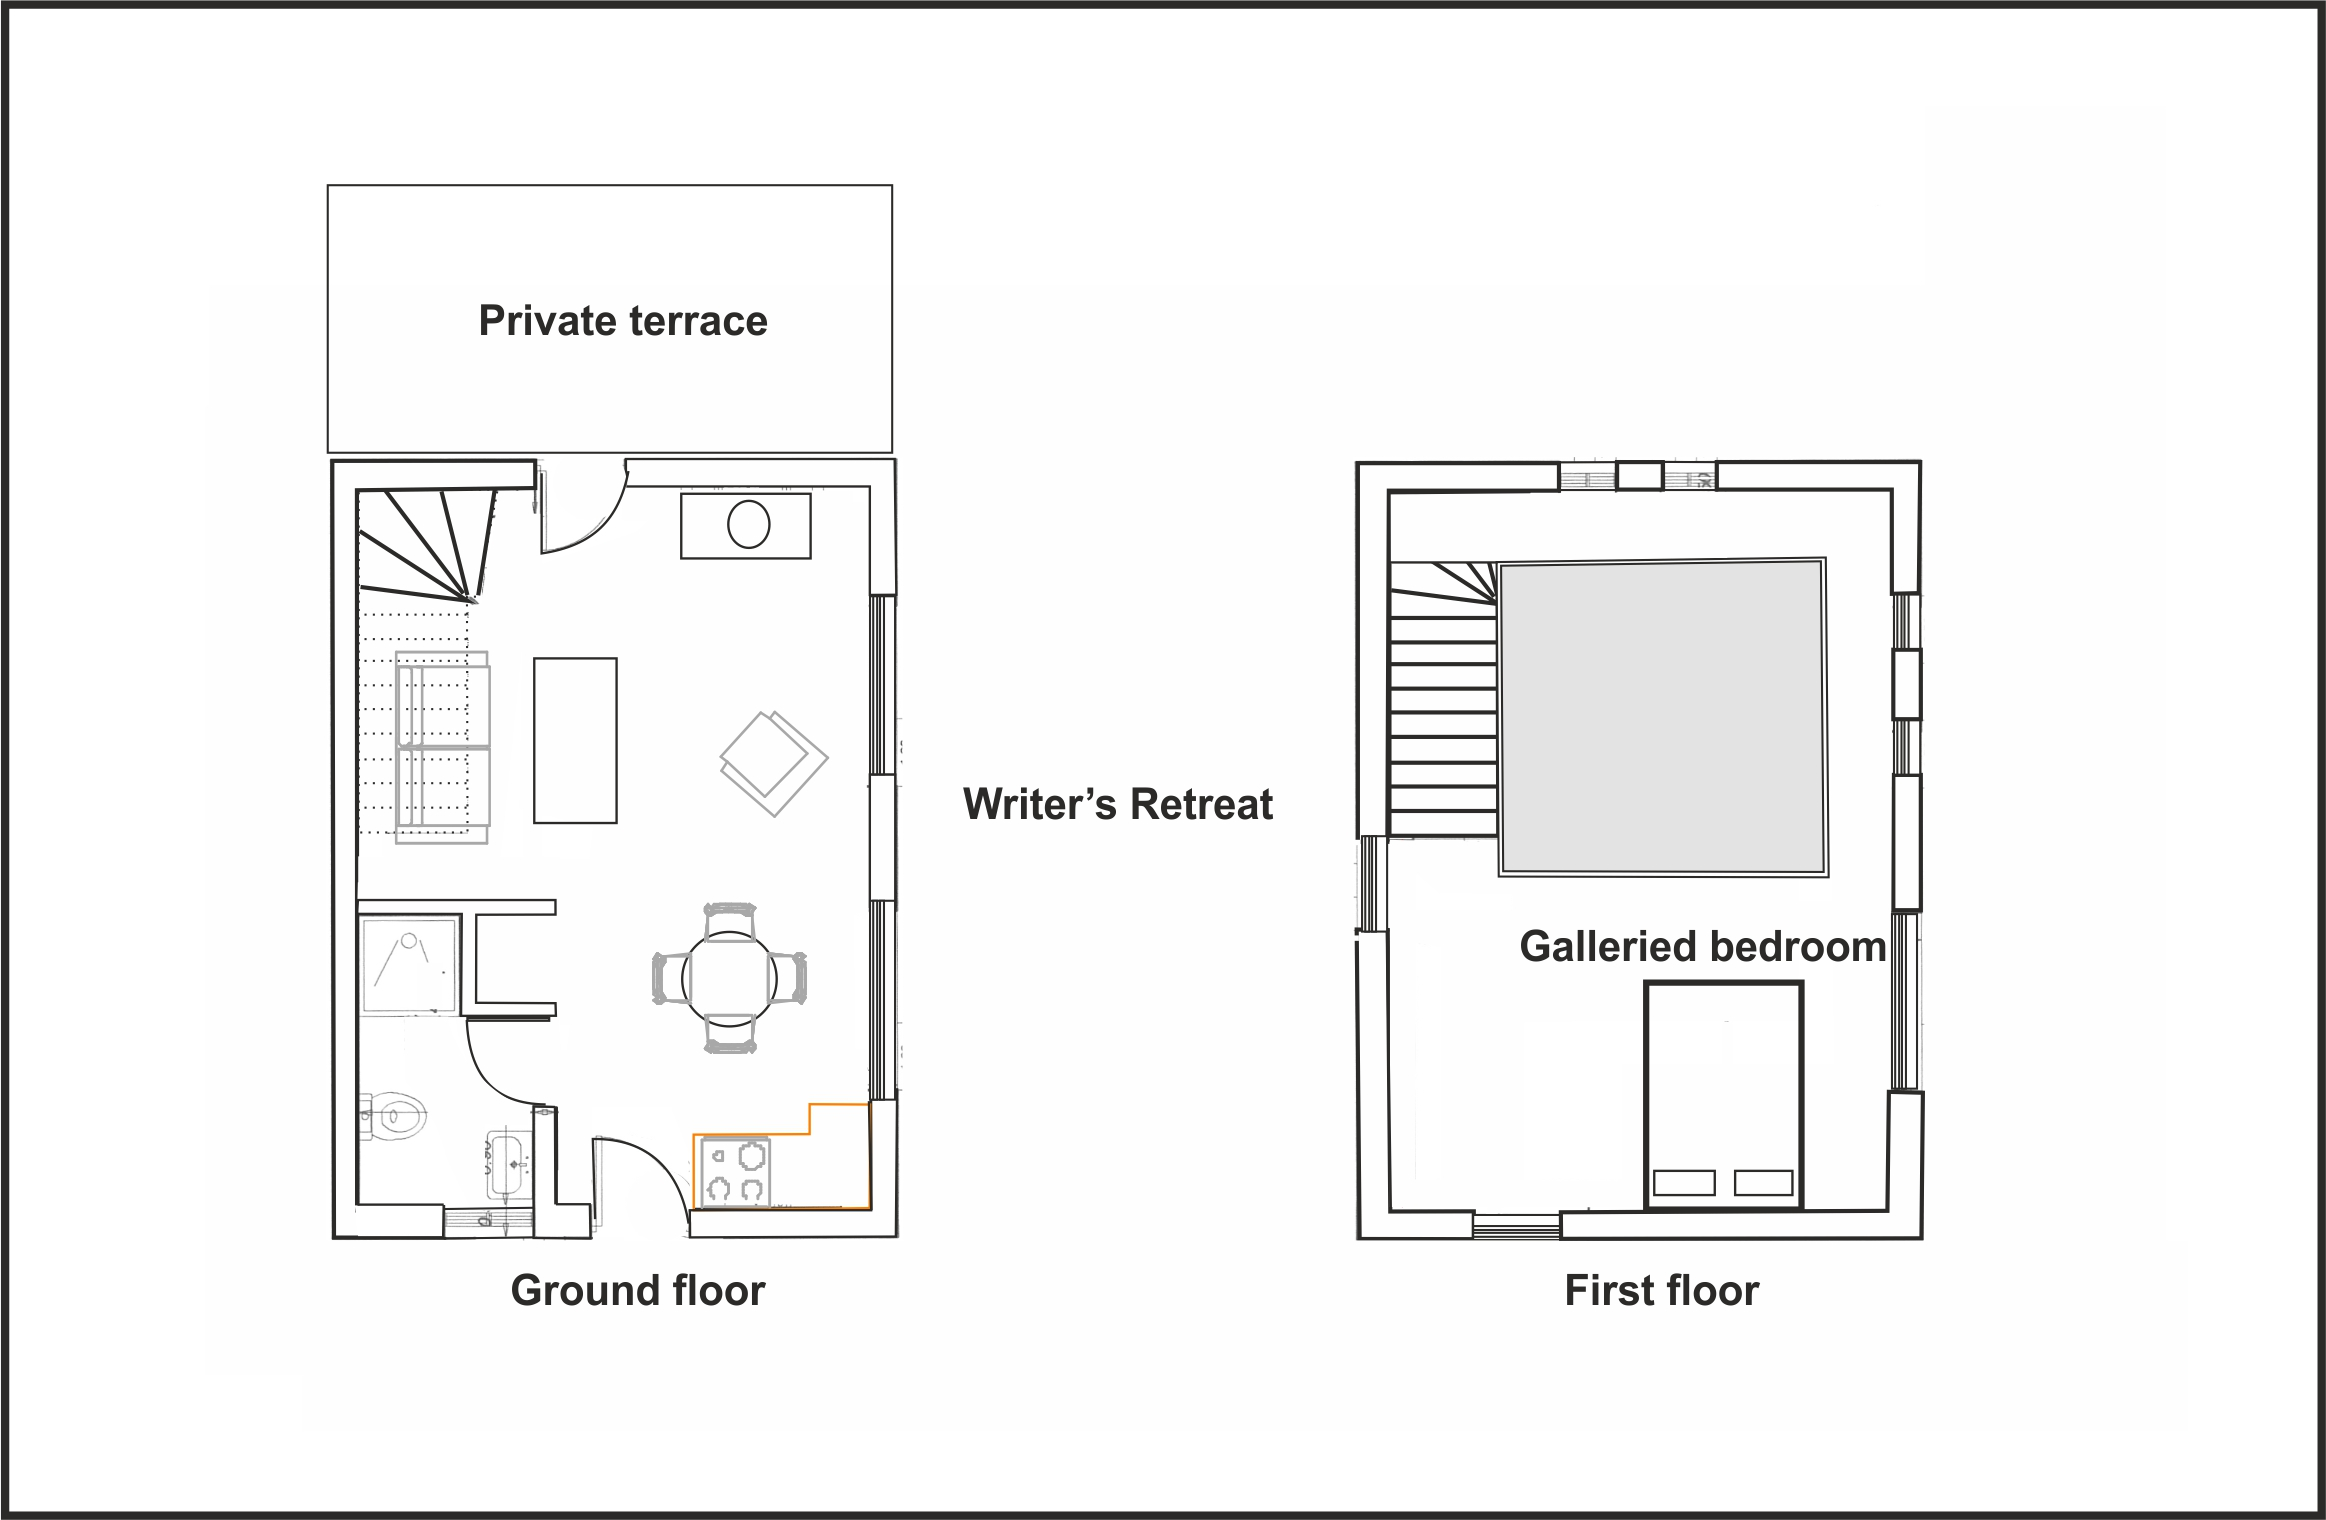 Floor plan of Writer's Retreat